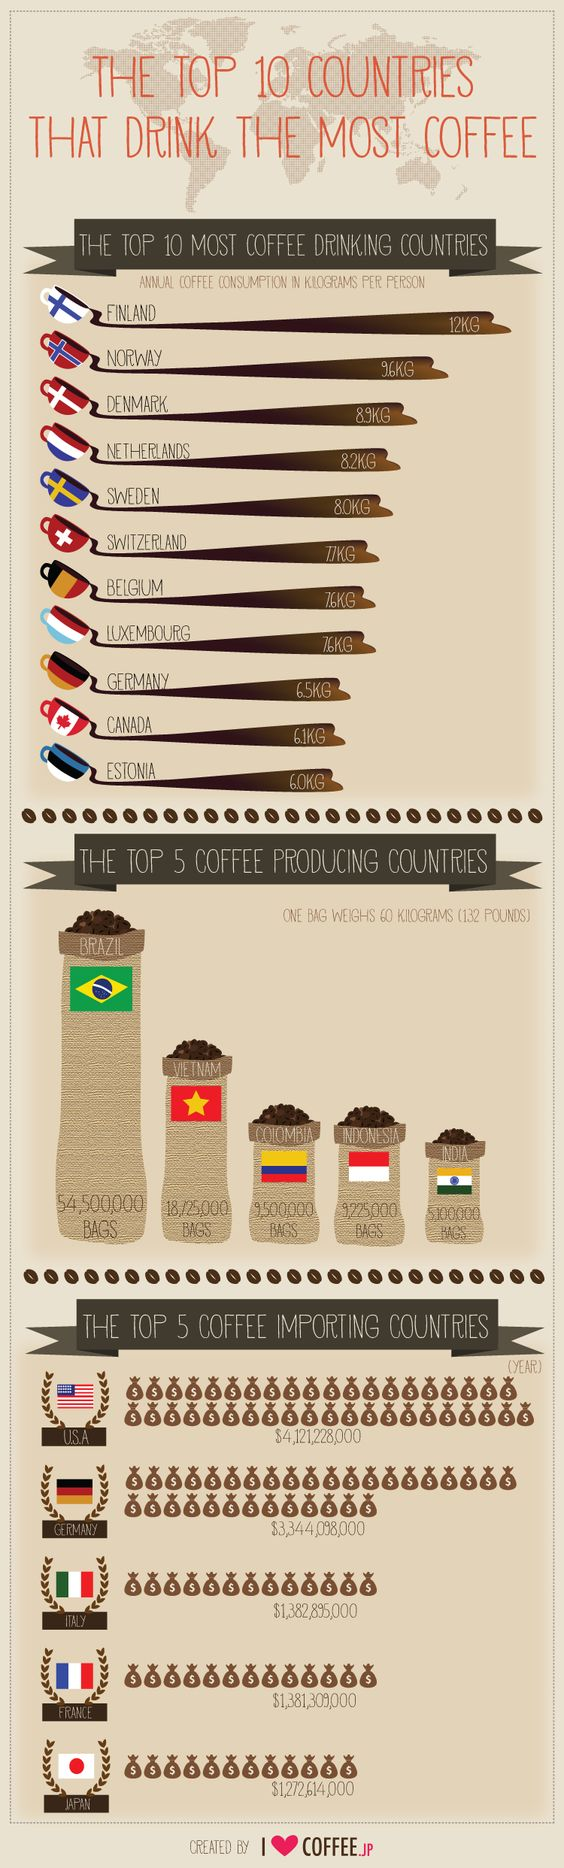 The top 10 countries that drink the most coffee | #Coffee #Infographic